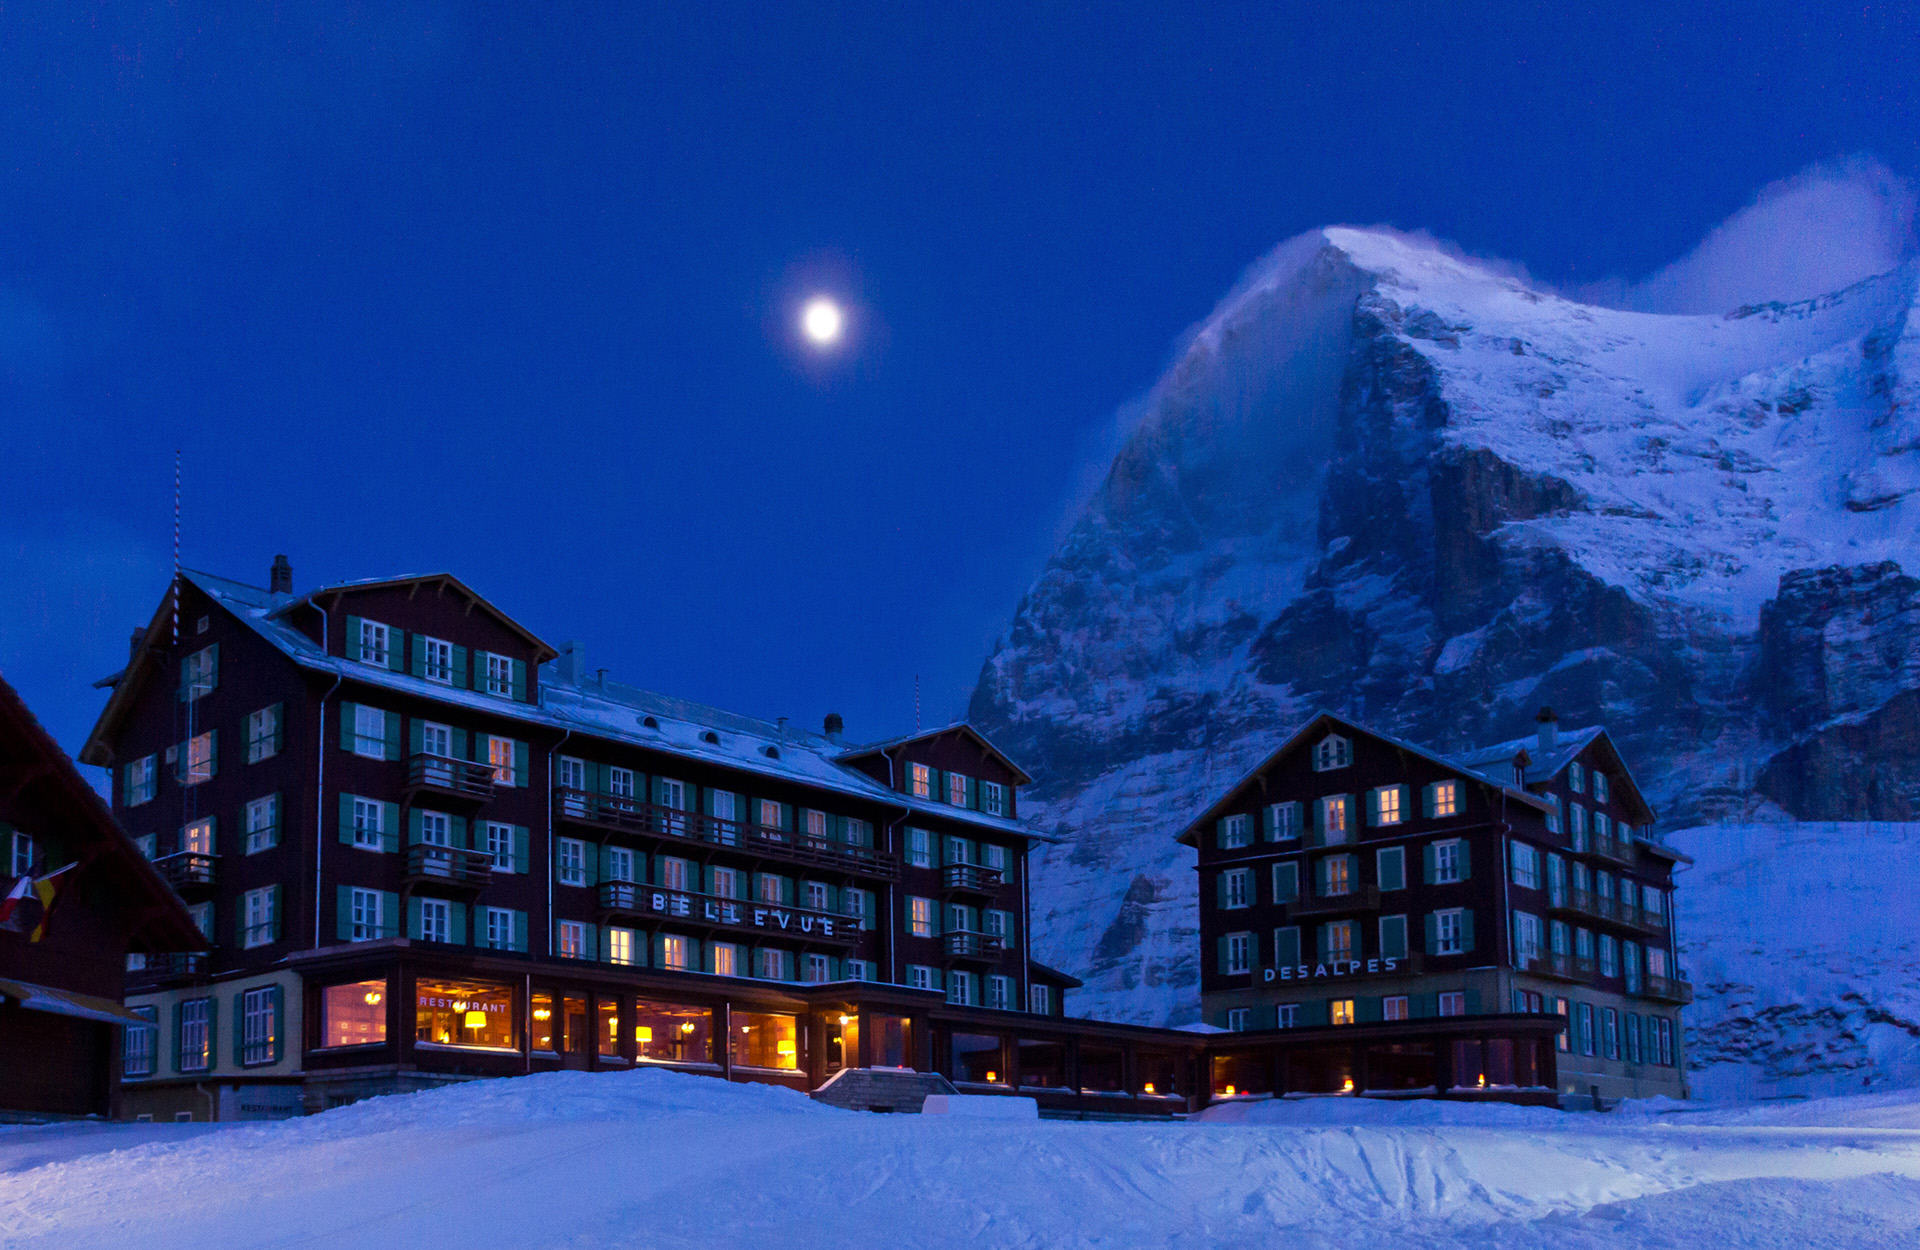 Hotel Bellevue des Alpes in front of the Eiger North Face